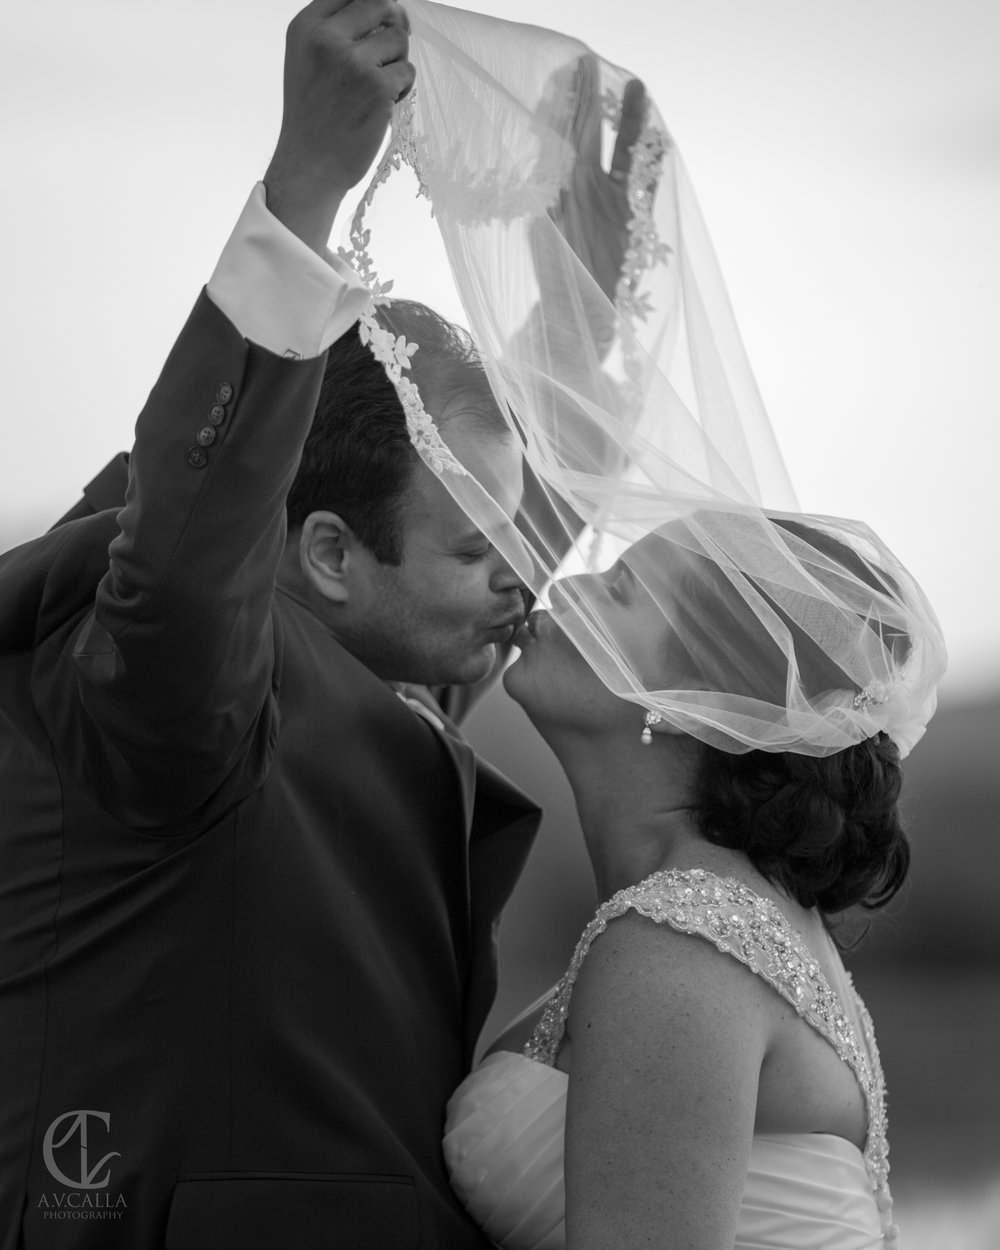 AVCalla-Wedding-23.jpg